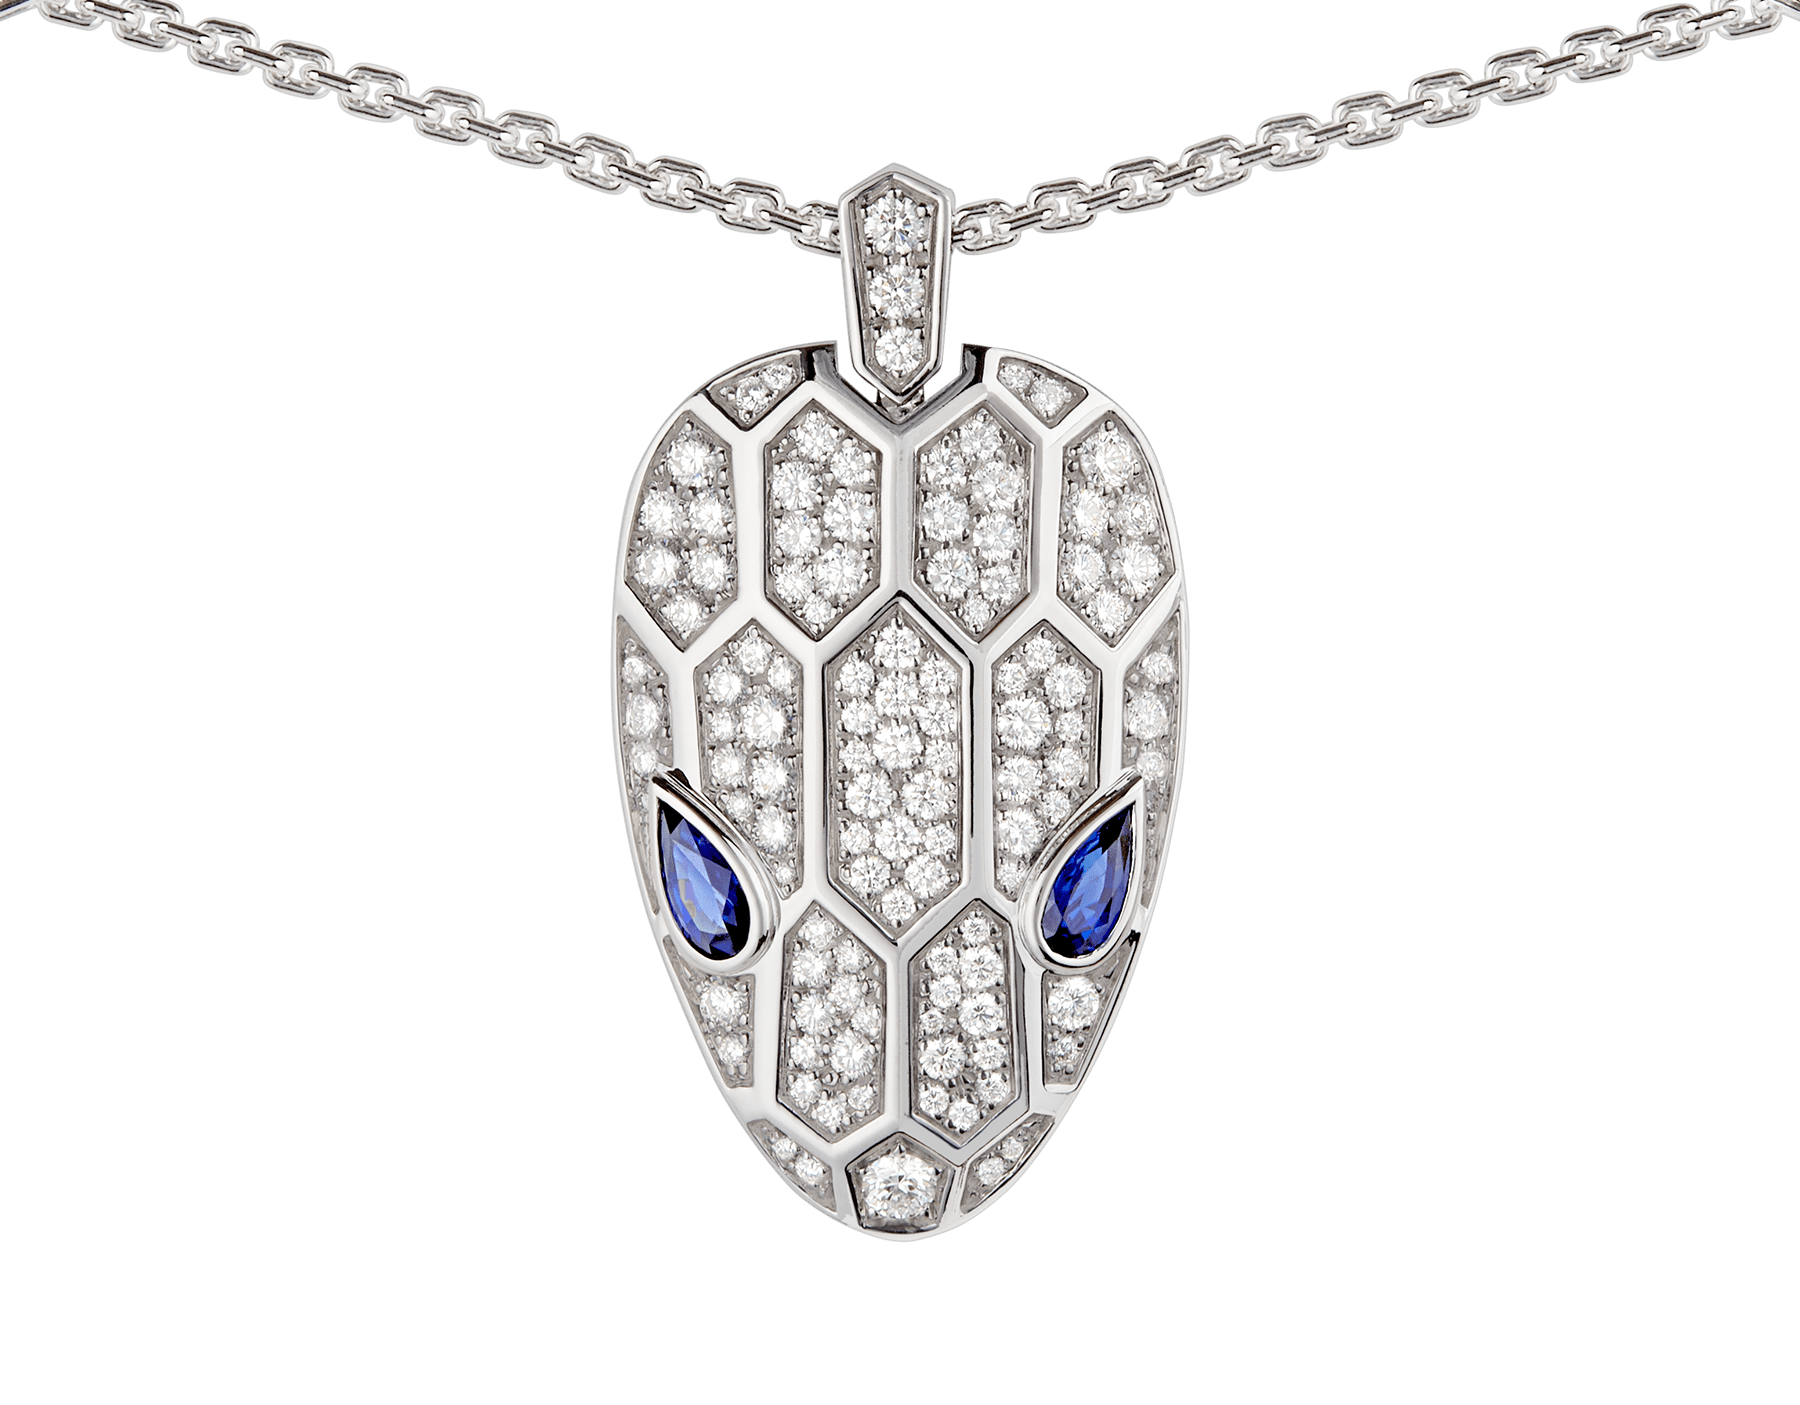 Serpenti necklace in 18 kt white gold set with blue sapphire eyes and pavé diamonds on both the chain and the pendant. 353529 image 3